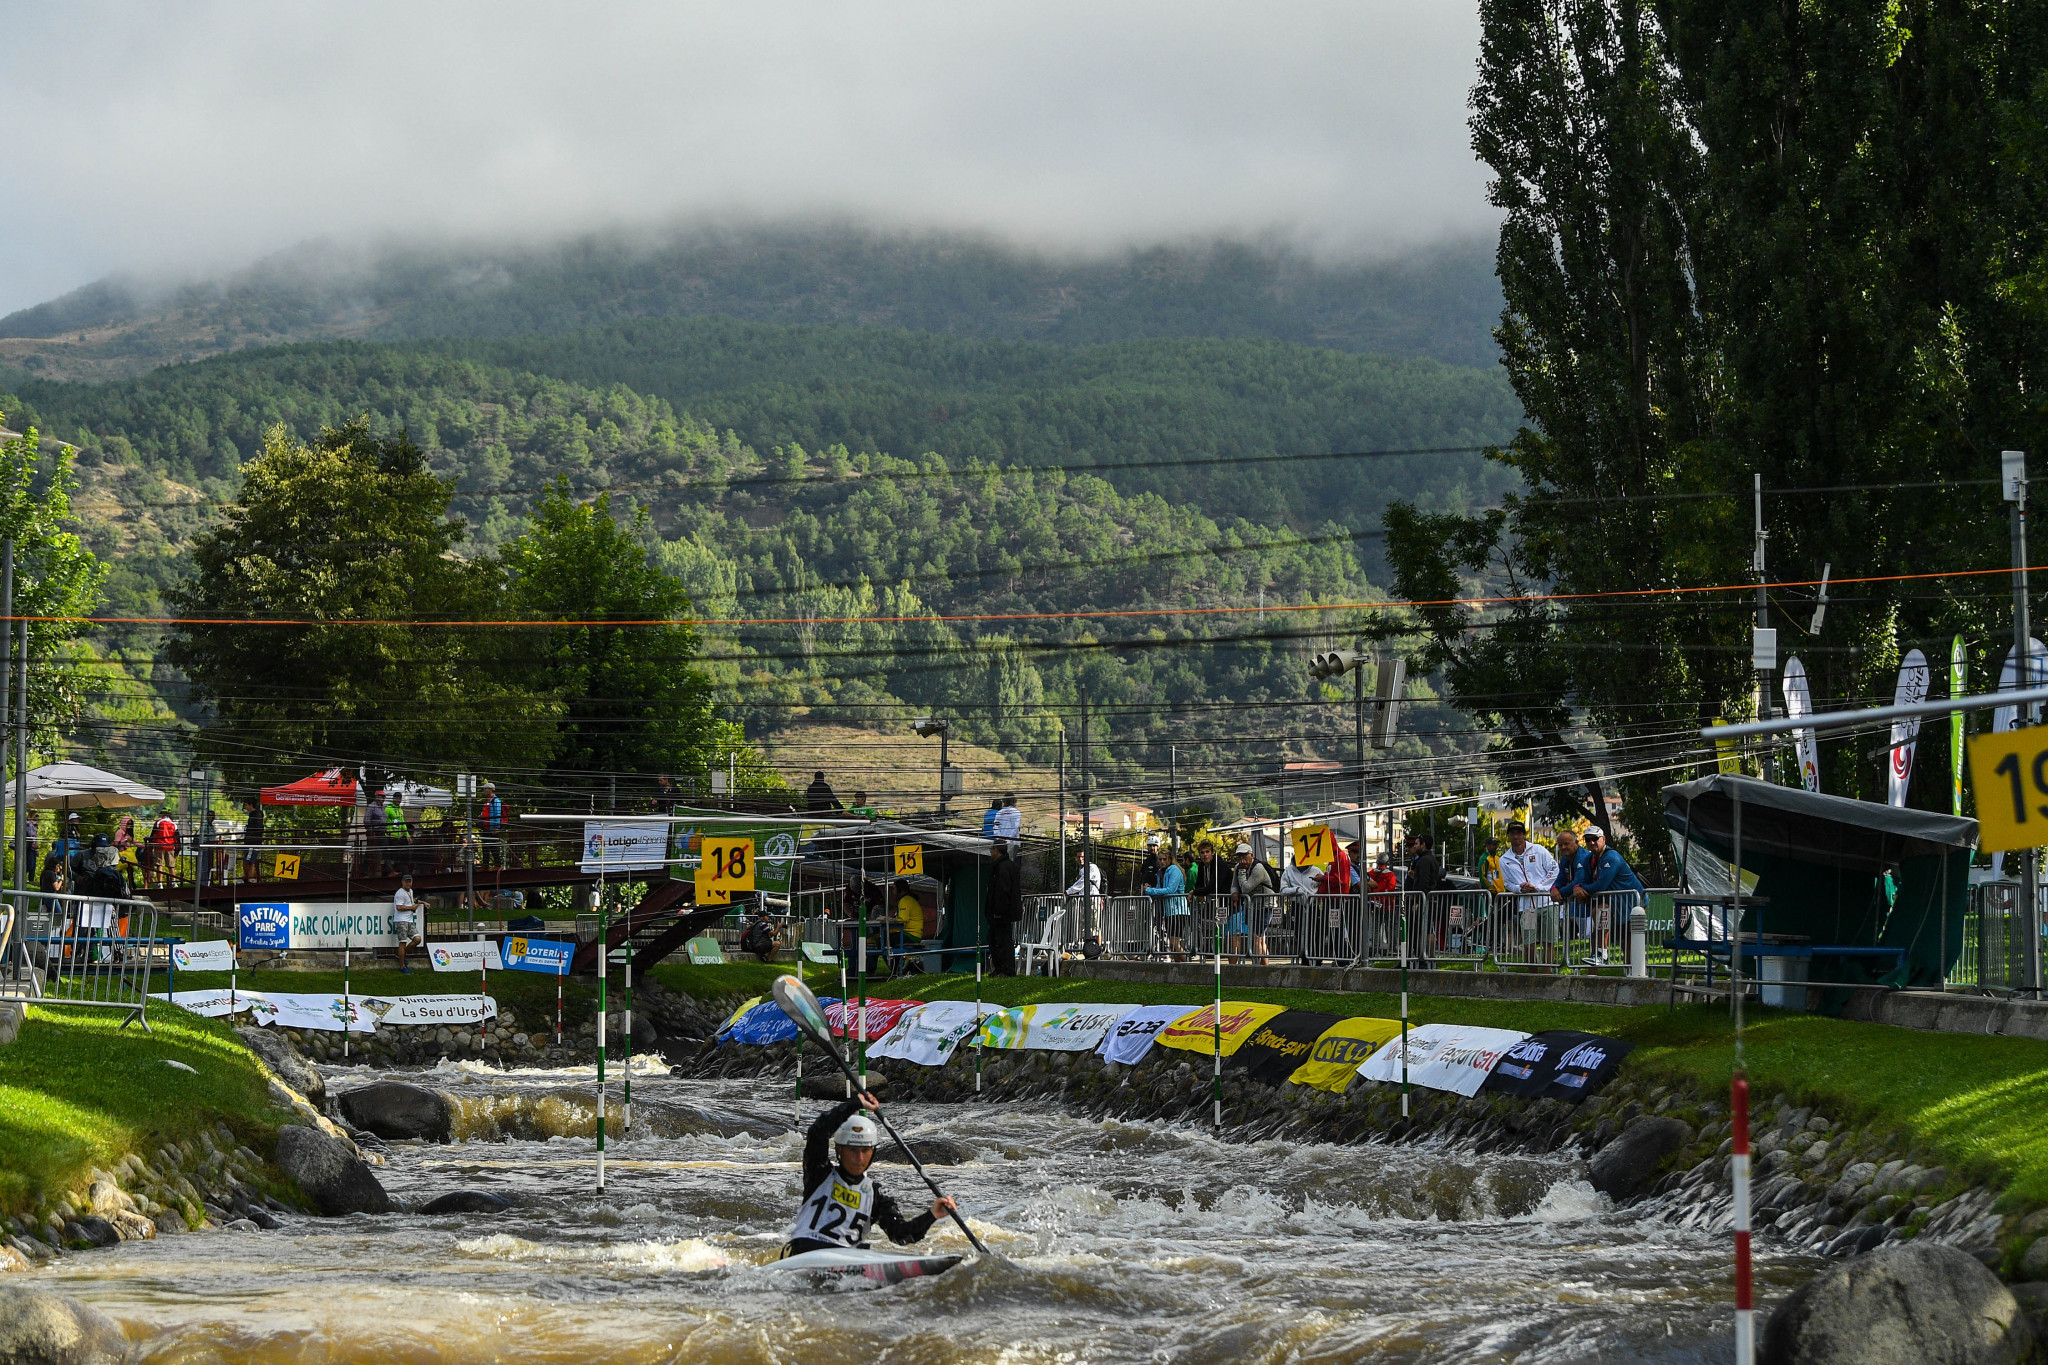 Four canoe slalom places at the Olympics on offer to African paddlers in La Seu